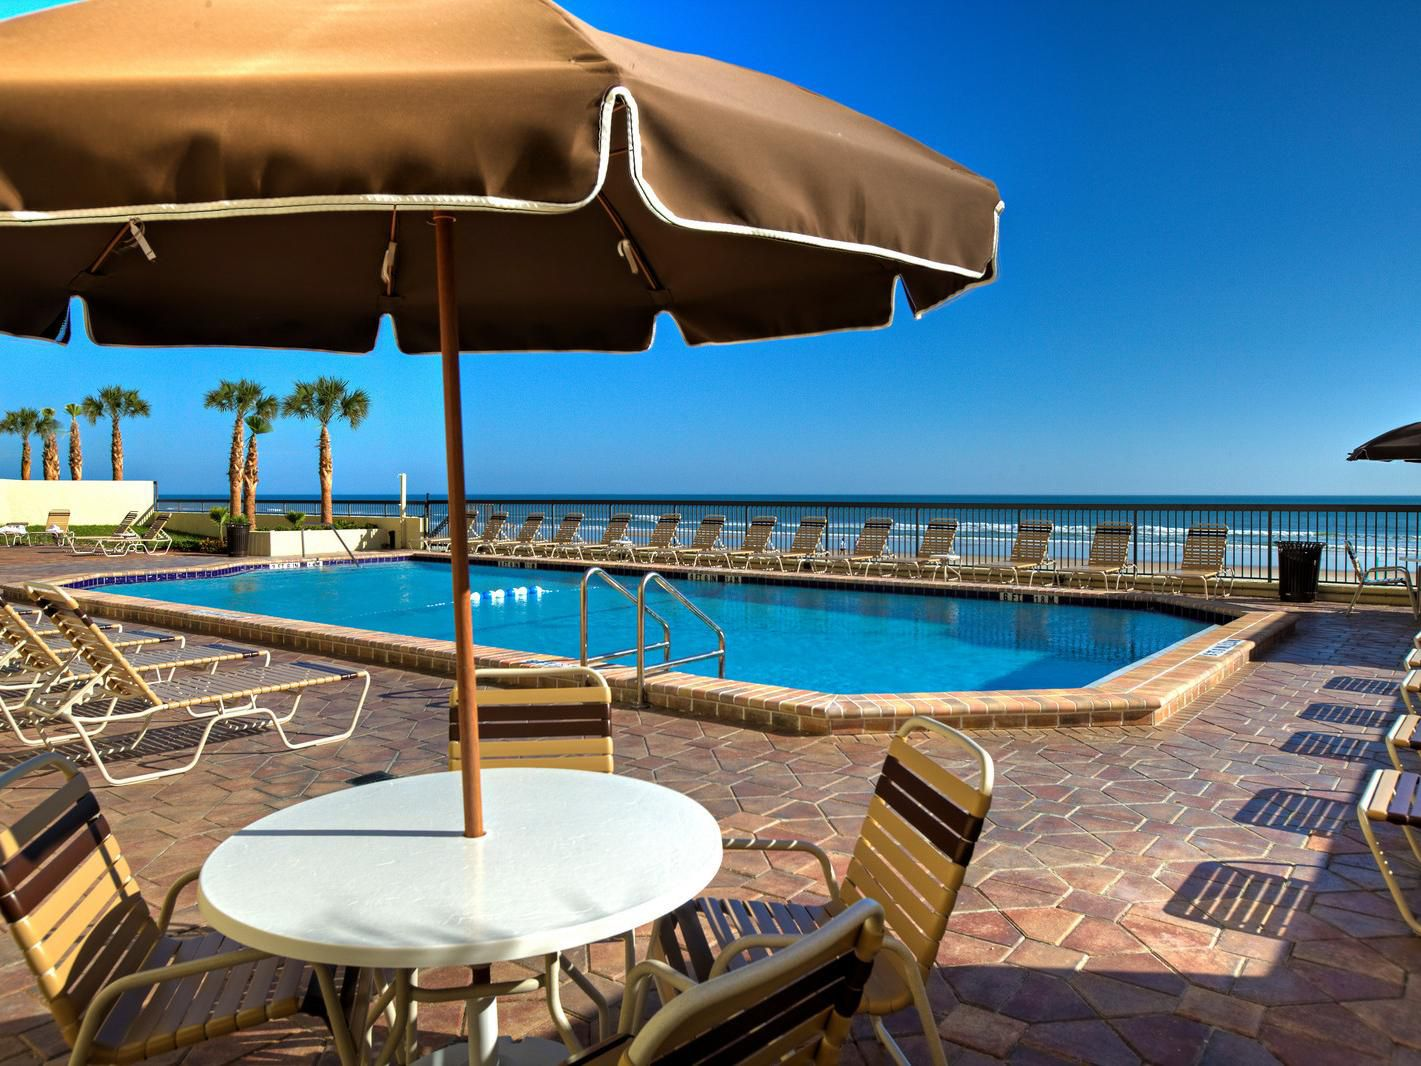 Beachside Pool Deck